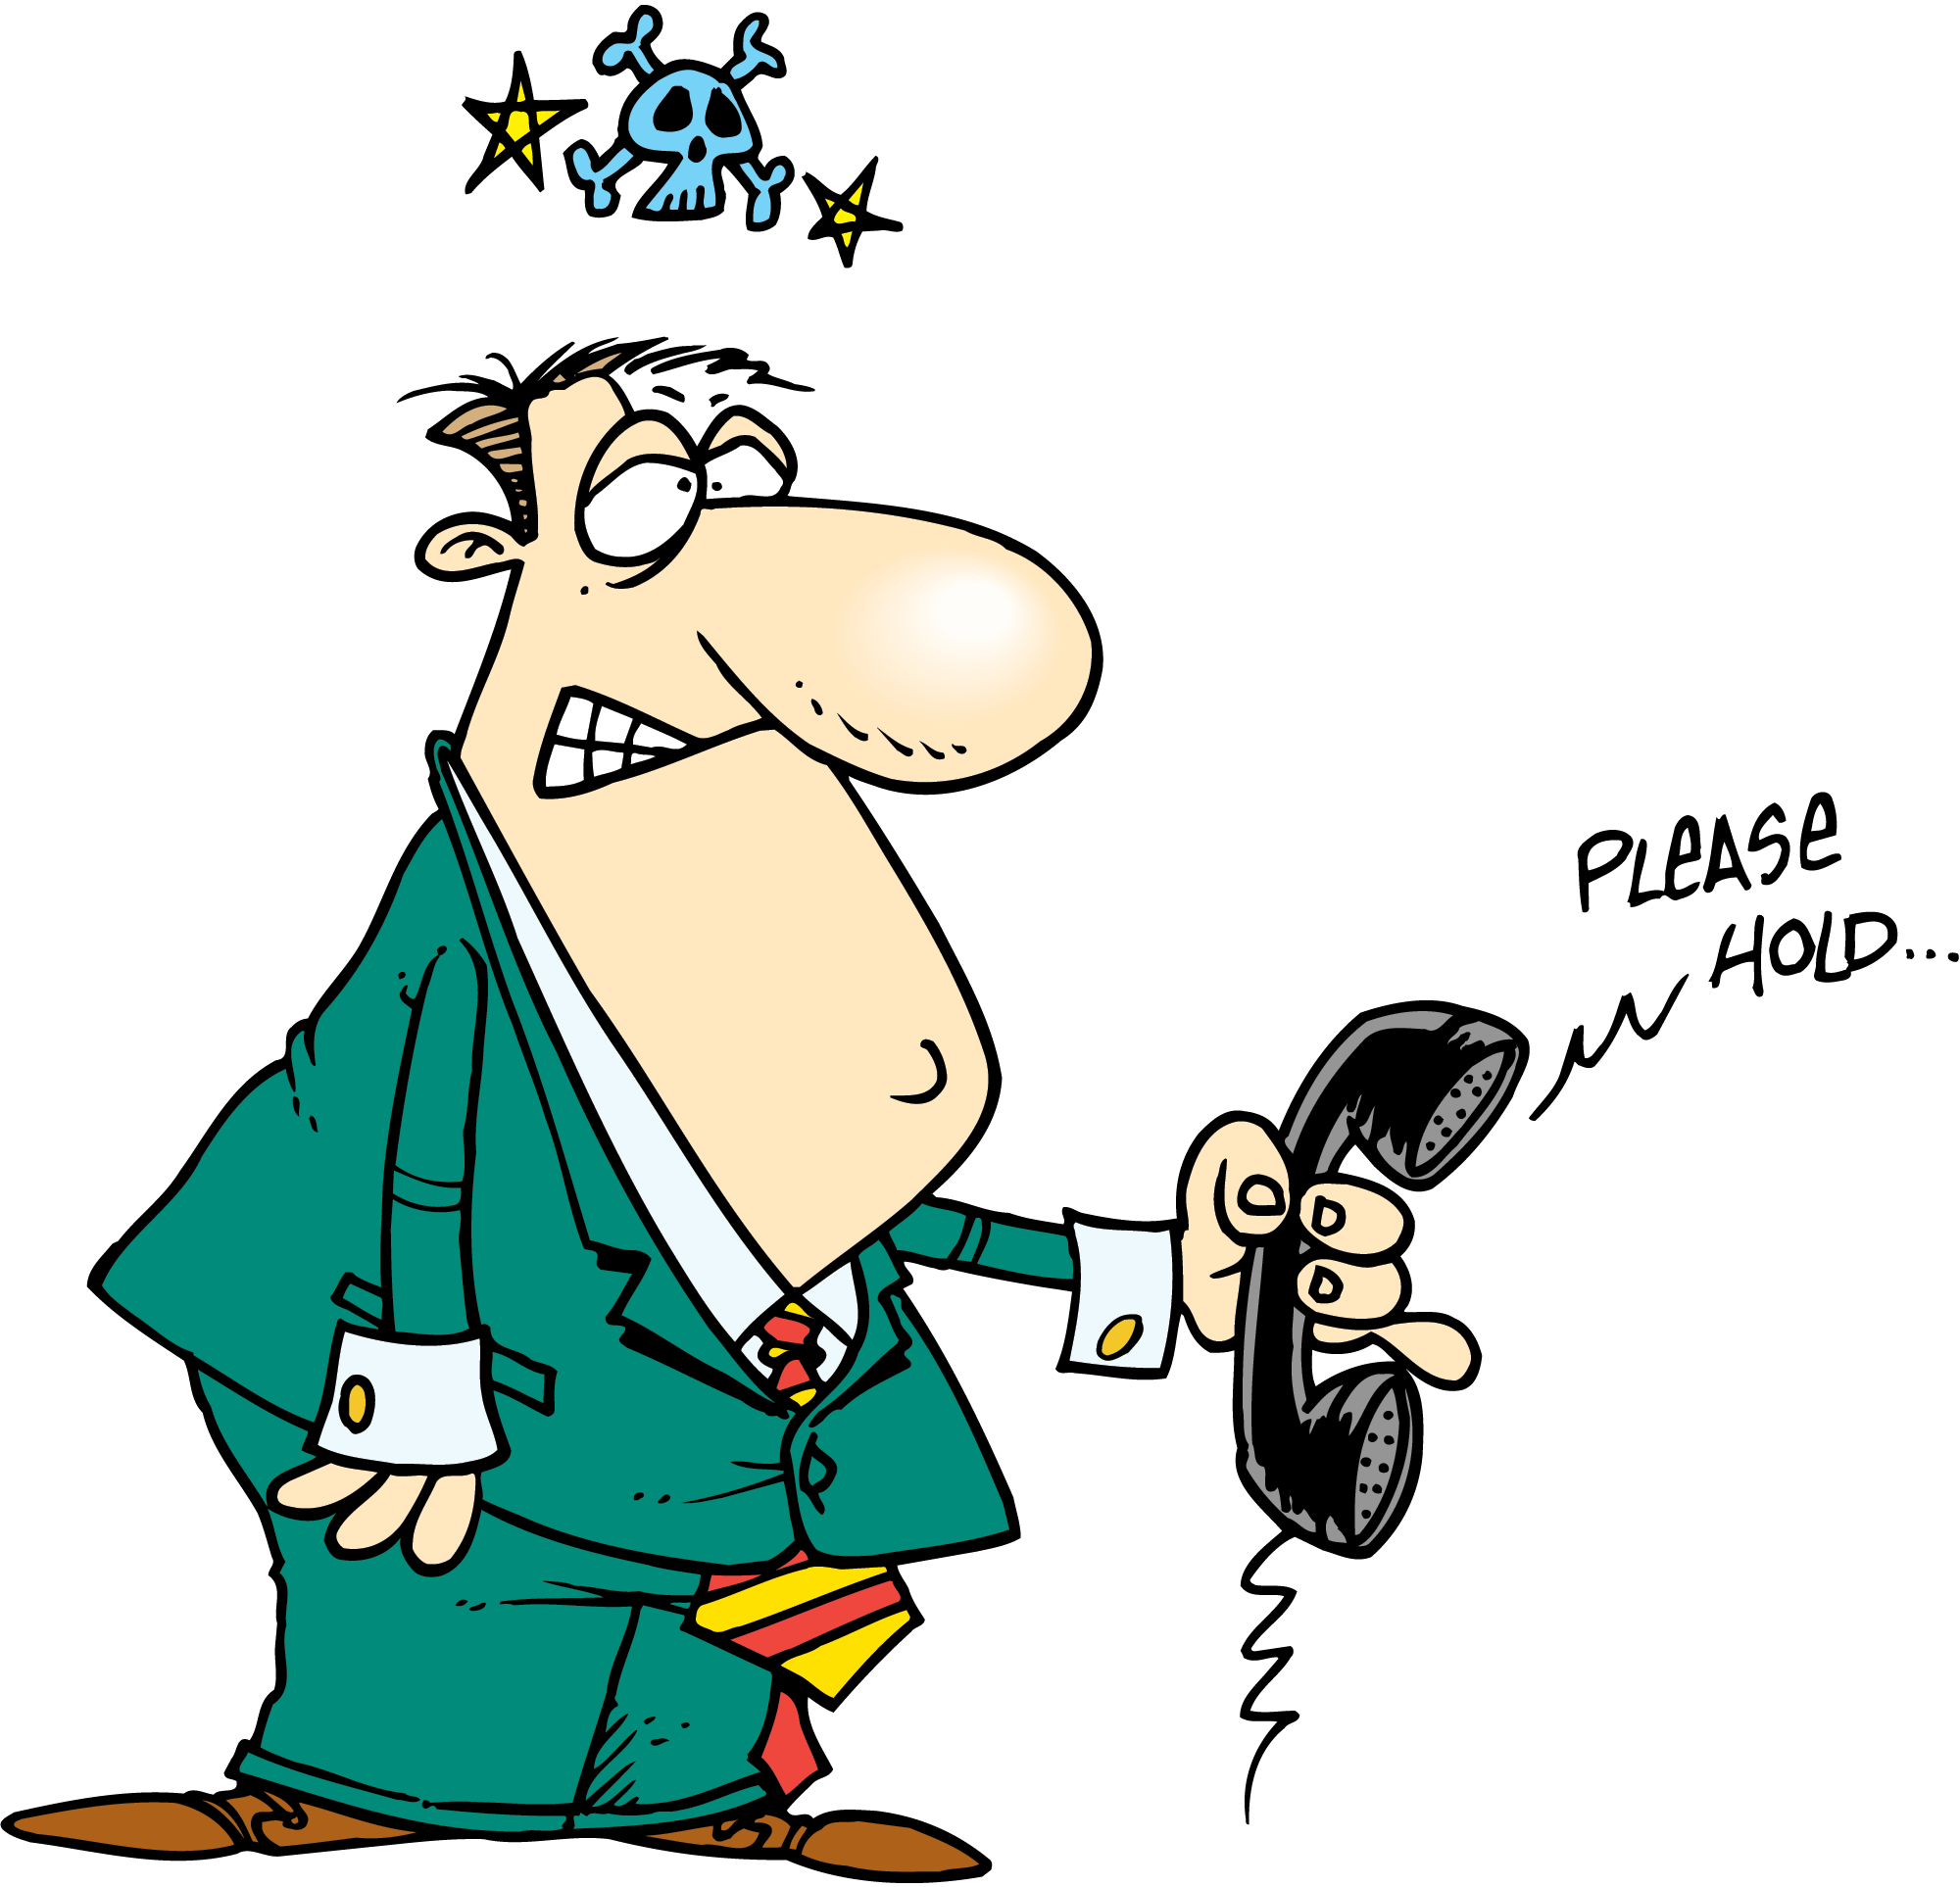 Have you looked at. Telephone clipart caller